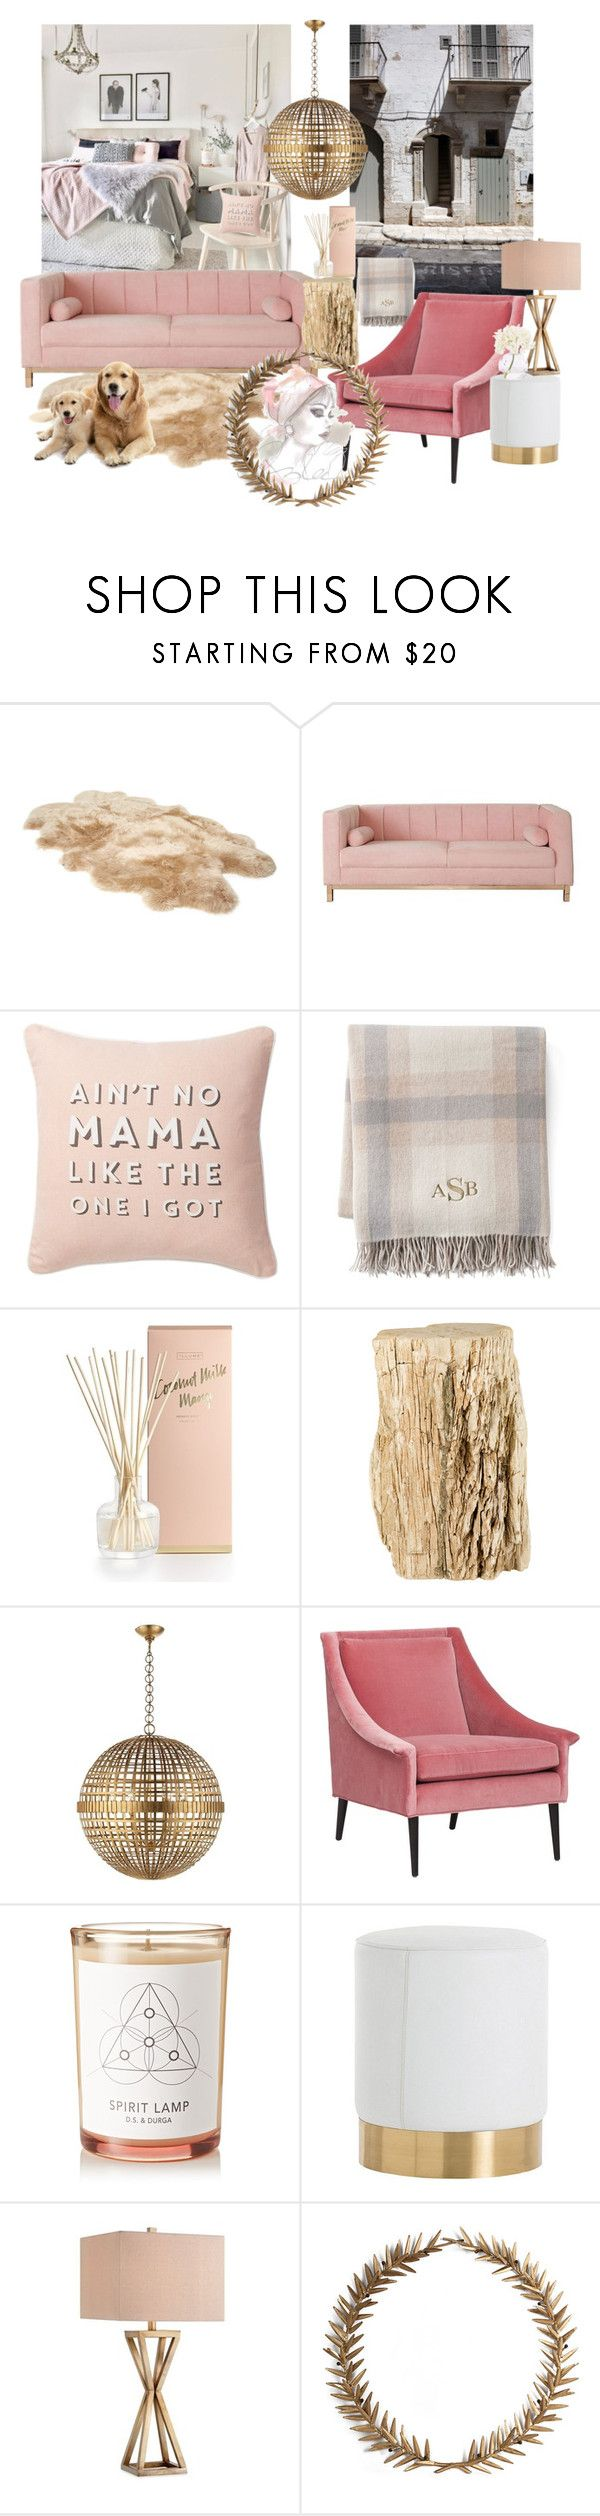 """""""FEMININE apartment"""" by mara-wink on Polyvore featuring interior, interiors, interior design, home, home decor, interior decorating, UGG, Nordstrom Rack, Lands' End and Illume"""